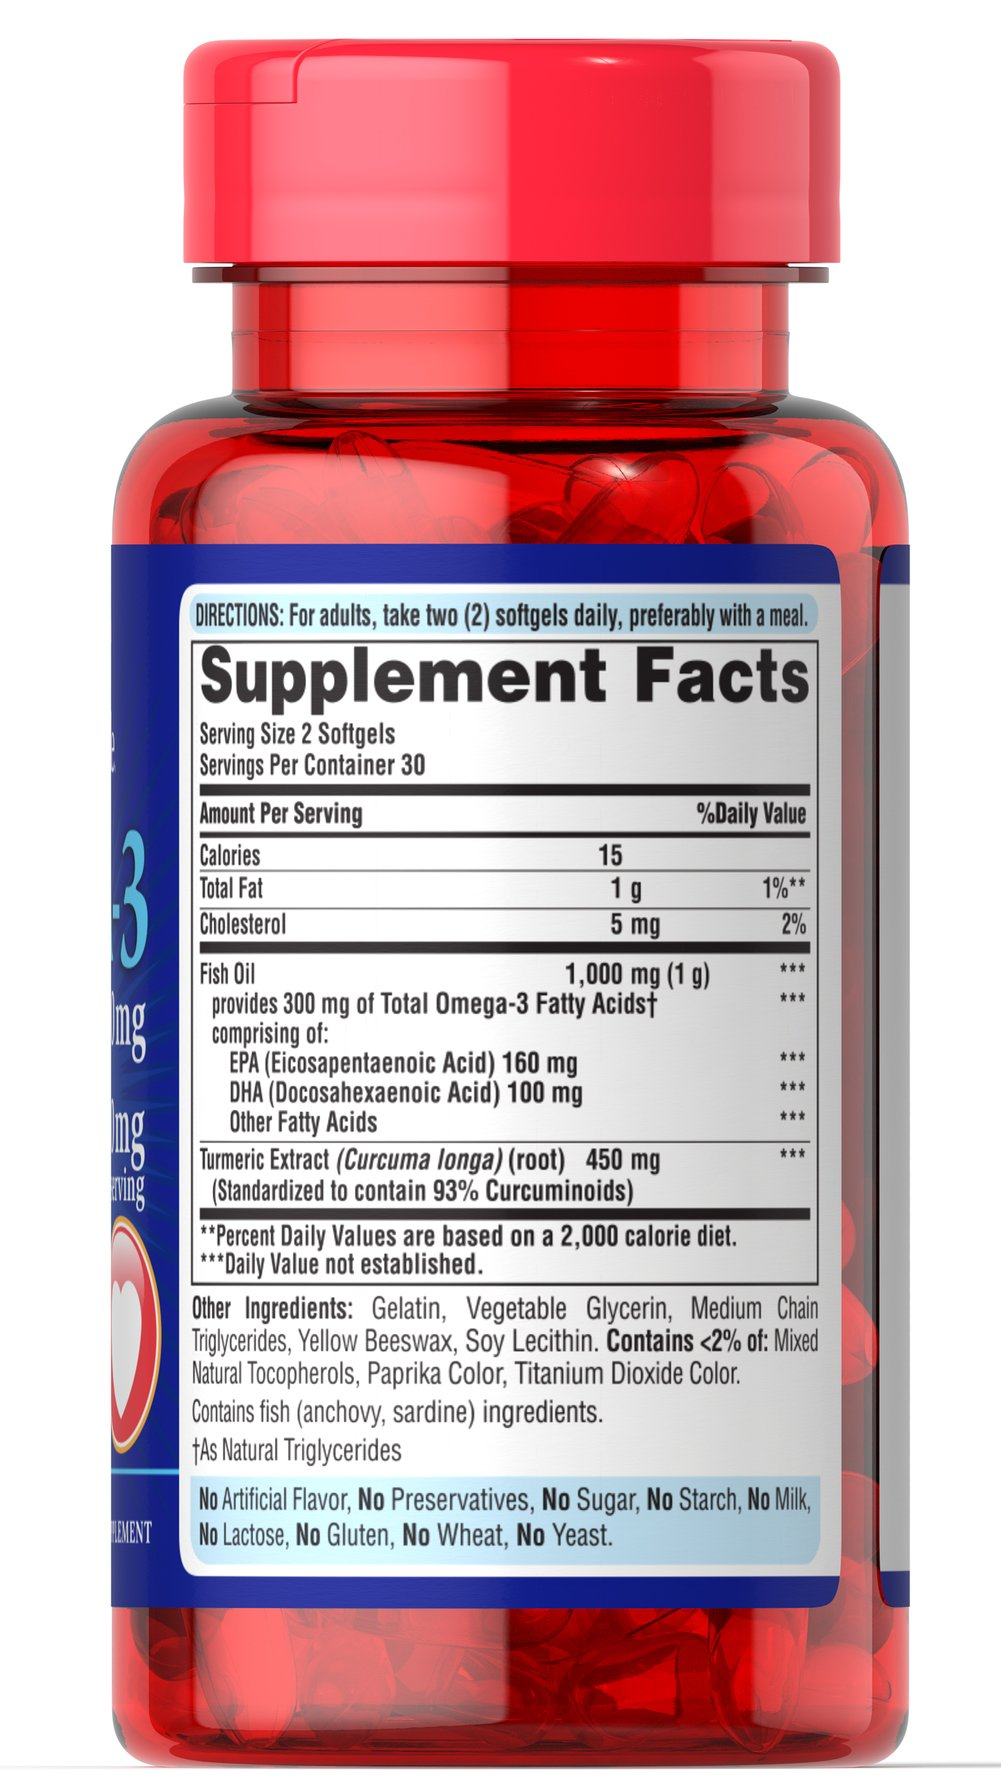 Omega 3 1000mg & Turmeric Curcumin 450mg Thumbnail Alternate Bottle View